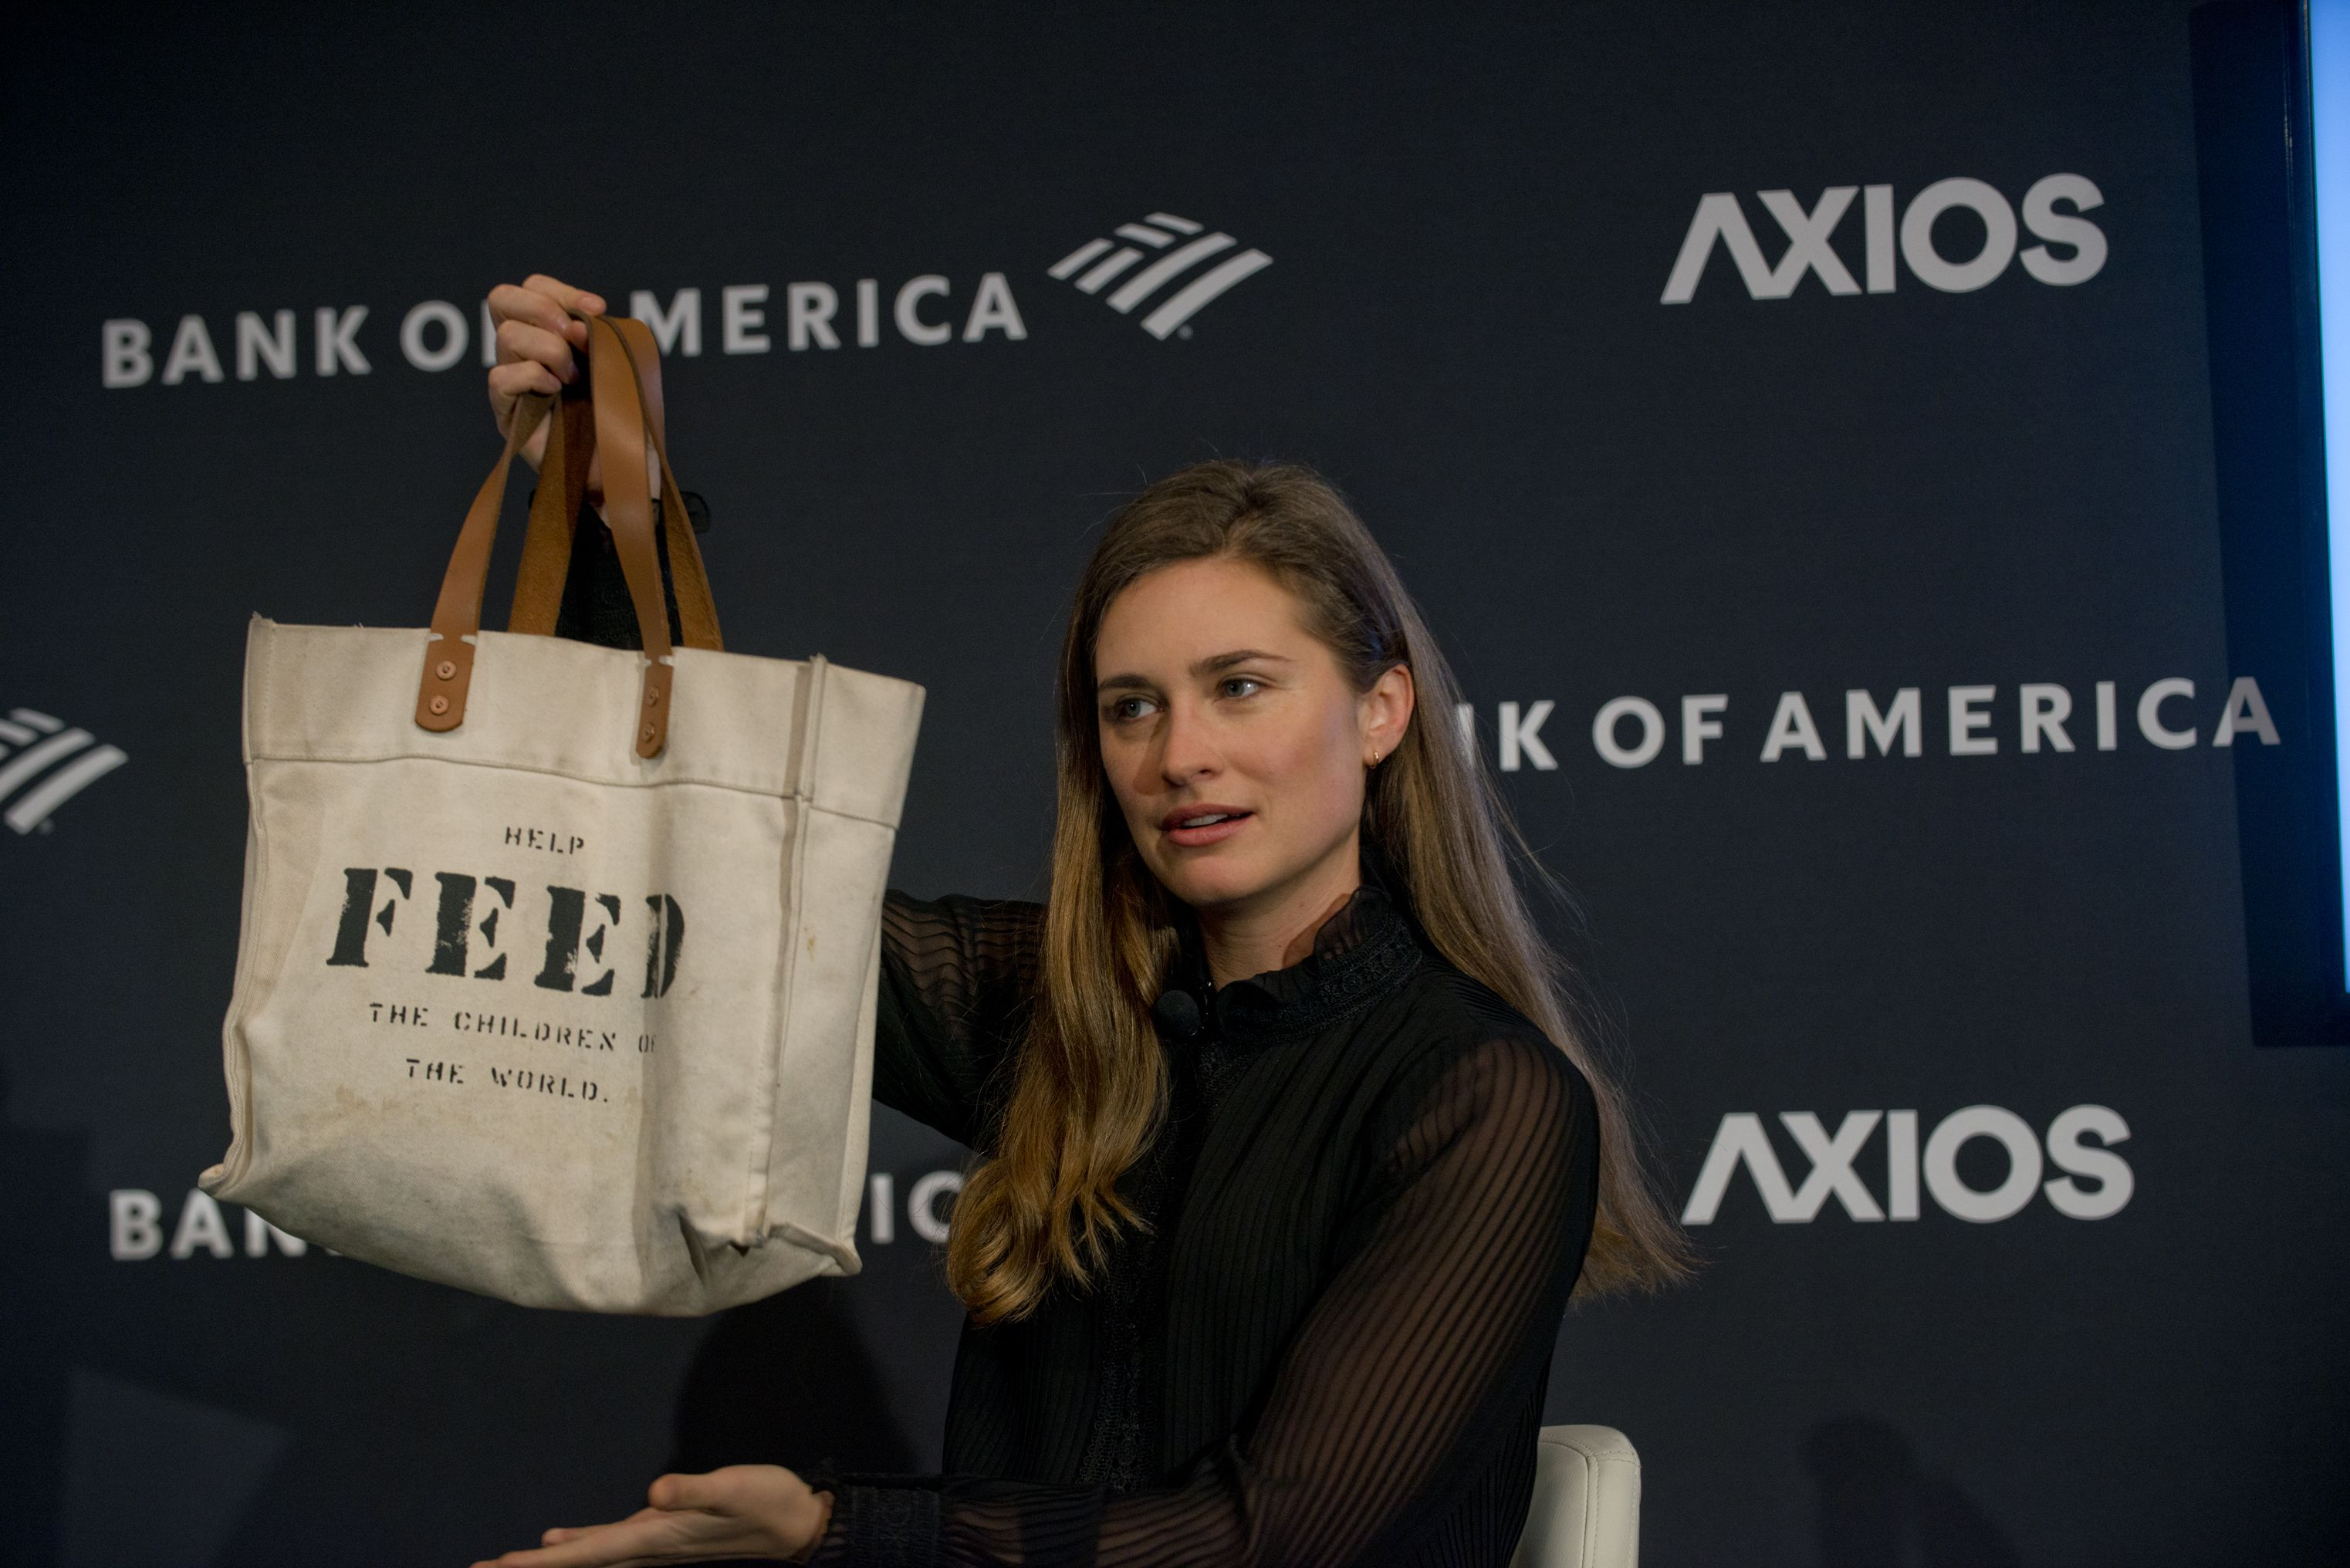 Lauren Bush Lauren holds up one of her FEED bags, demonstrating what they look like for the Axios audience